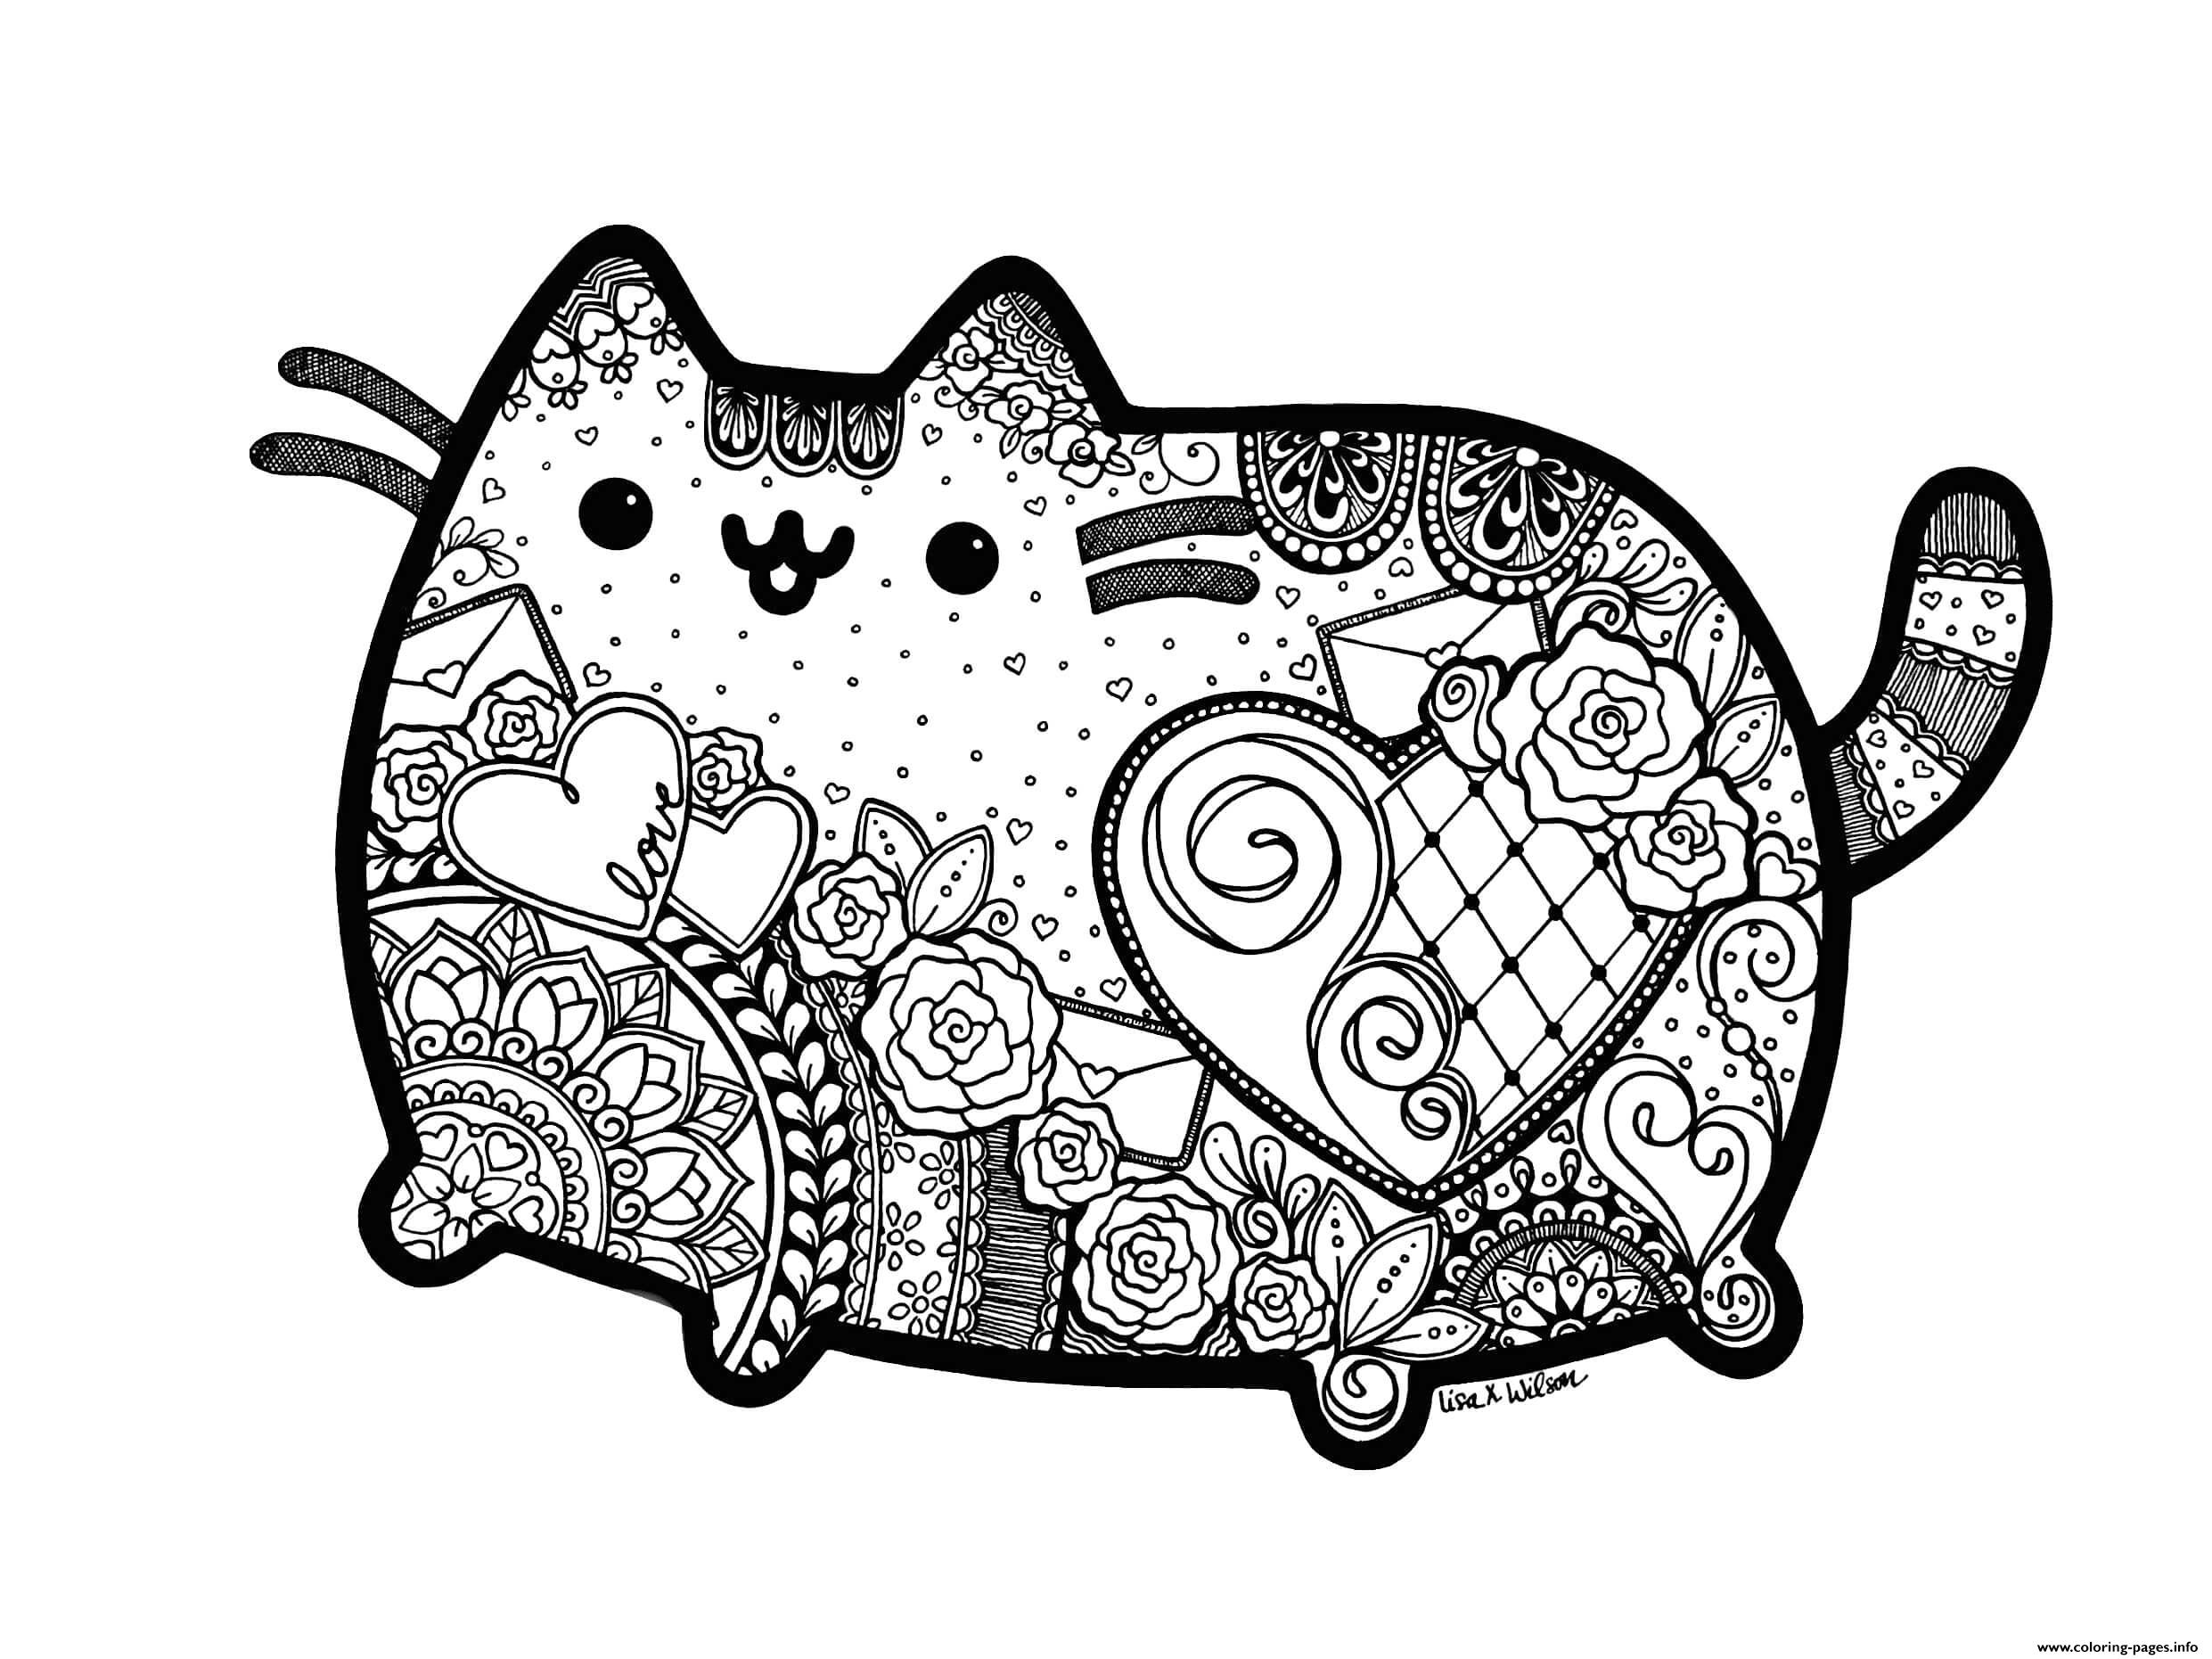 cat adult coloring pages Pusheen The Cat Adult Inspired Zentangle With Mandala Coloring  cat adult coloring pages